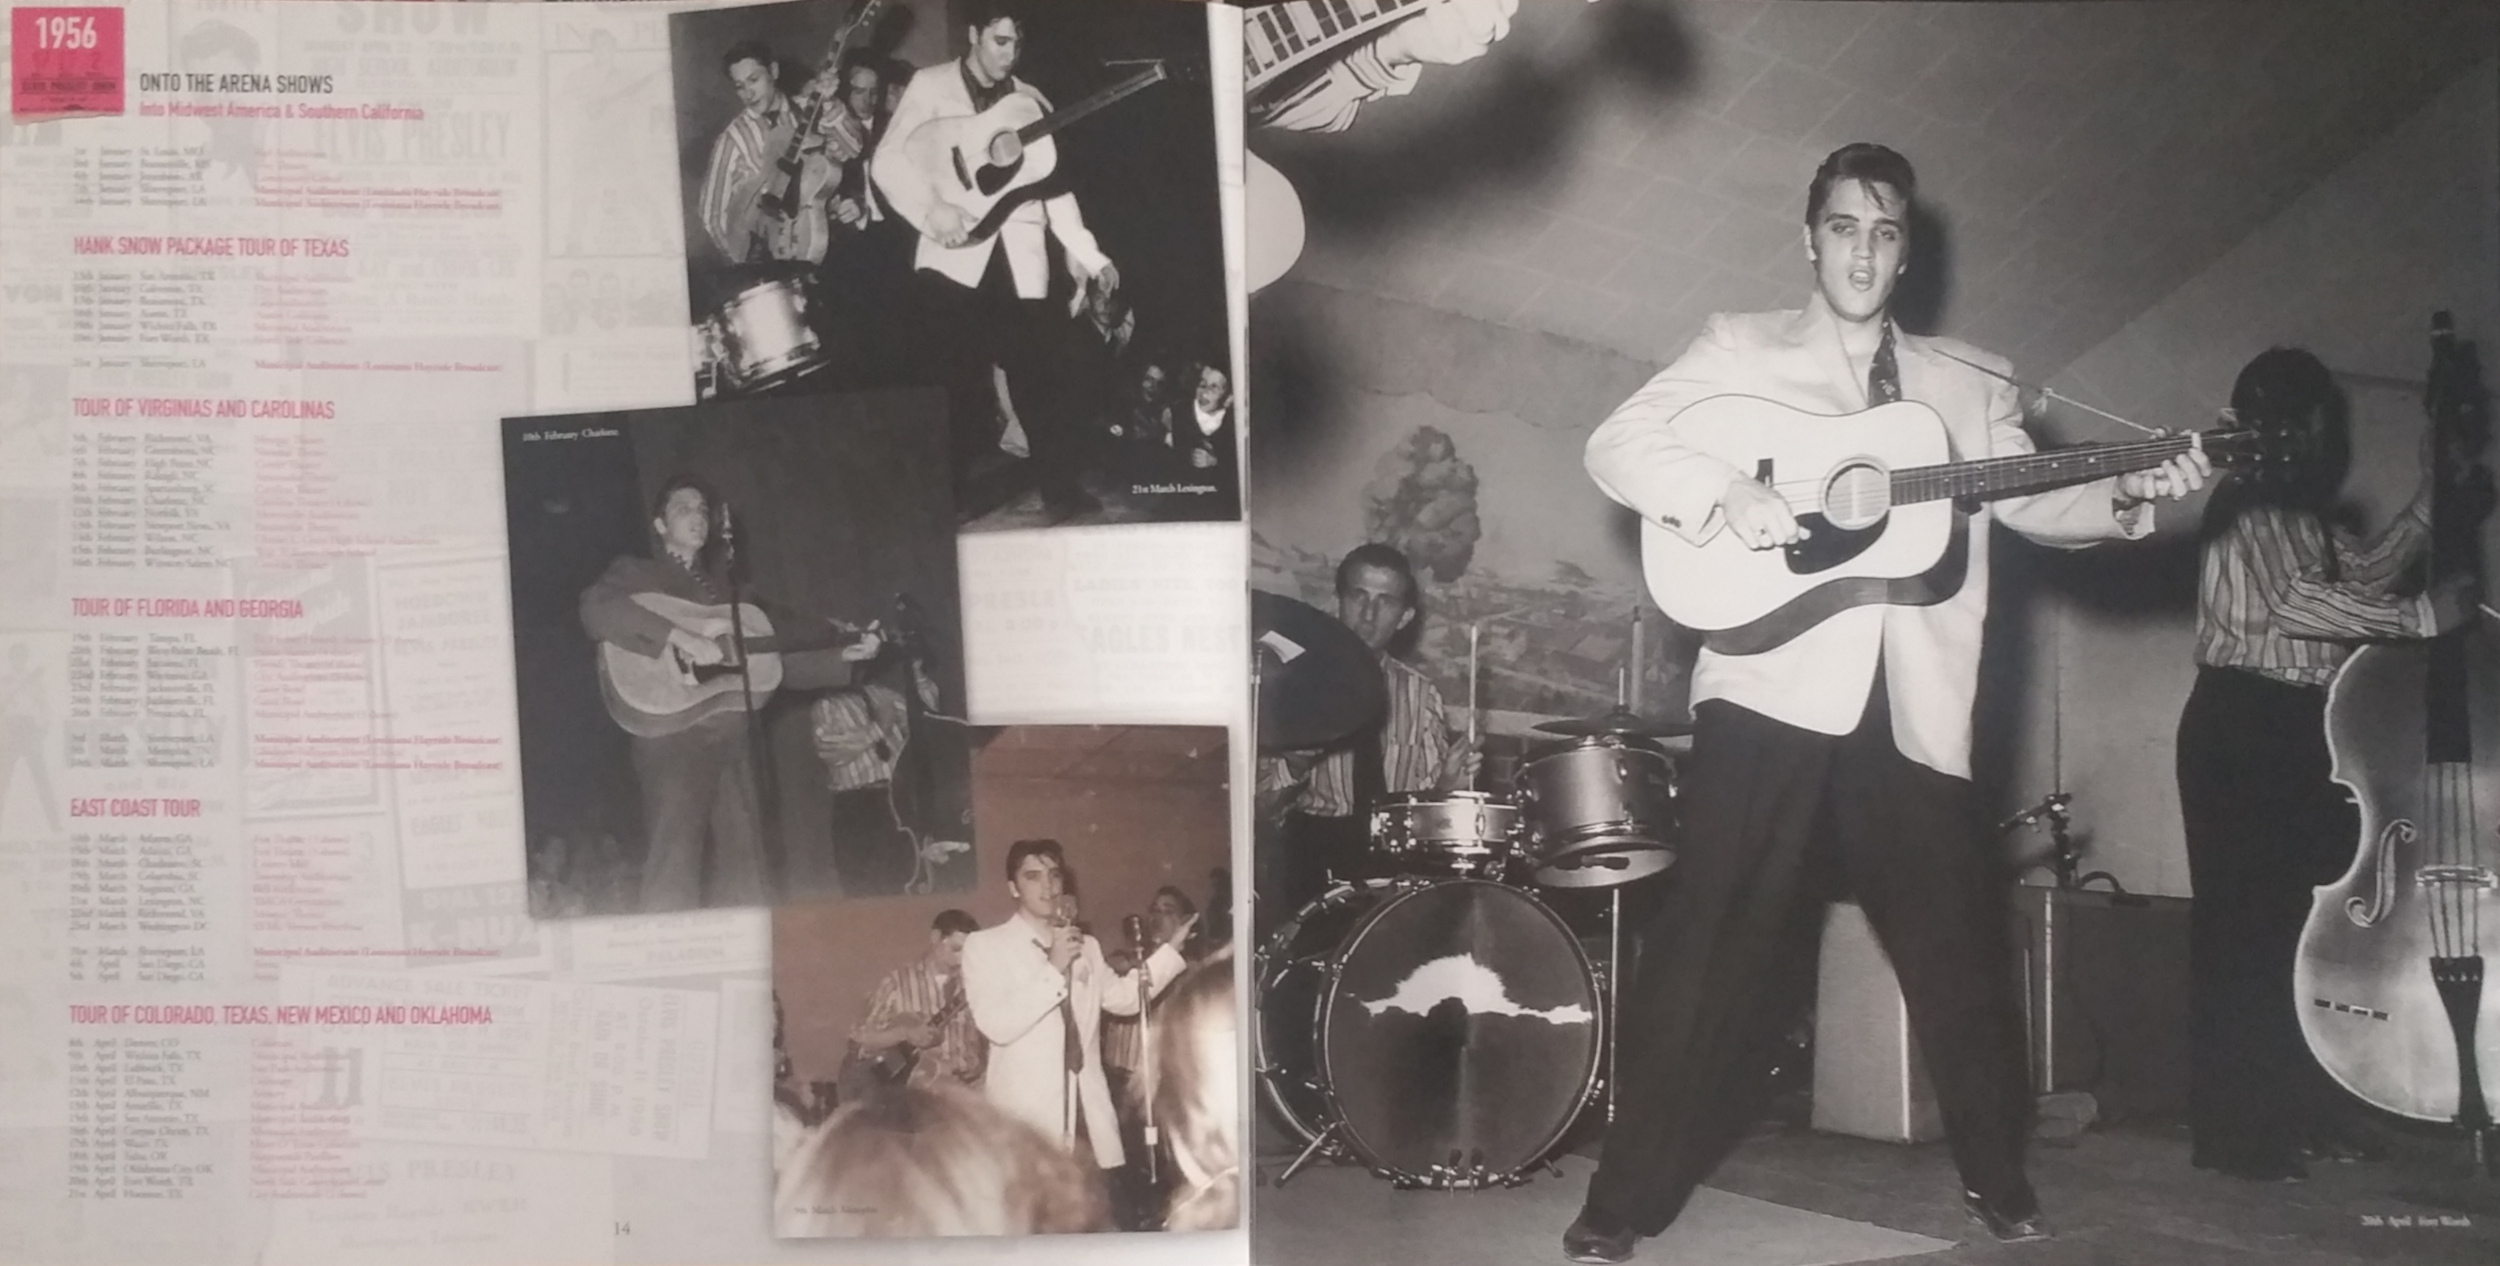 LIVE IN THE 50's (The Complete Tour Recordings) Liveinthe50s-thecomplswj2p